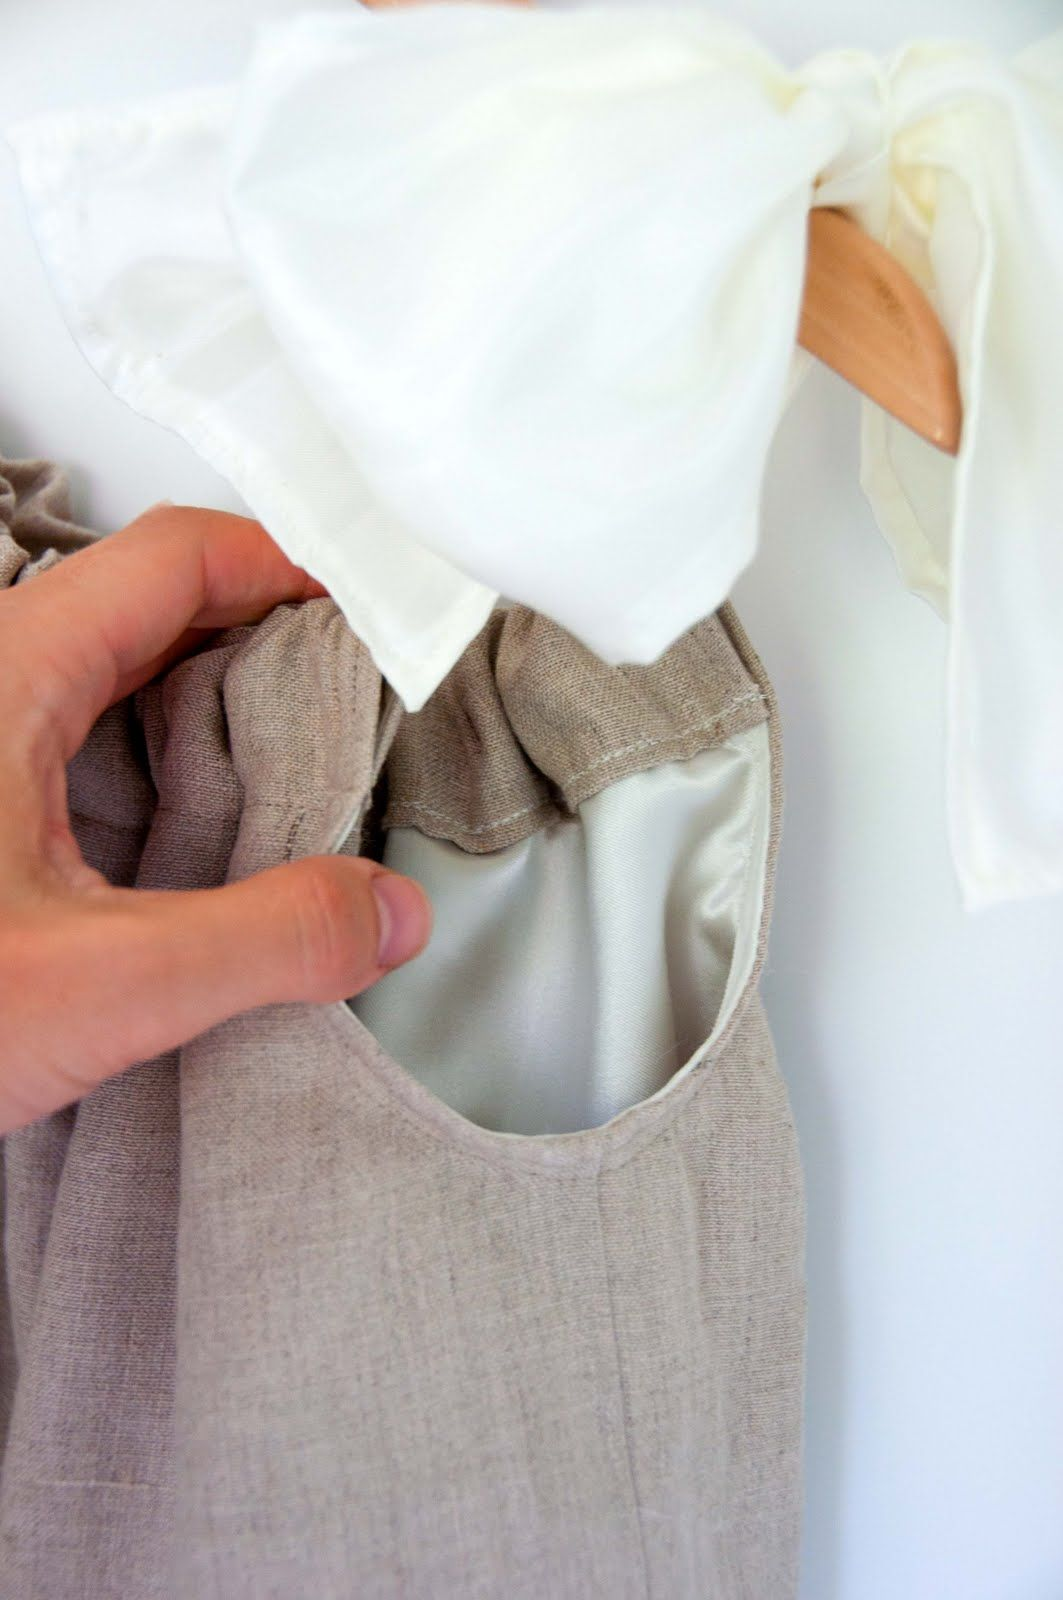 DOUBLE LAYER PILLOWCASE DRESS TUTORIAL & DOUBLE LAYER PILLOWCASE DRESS TUTORIAL | Sewing / DIY / Kids and ... pillowsntoast.com